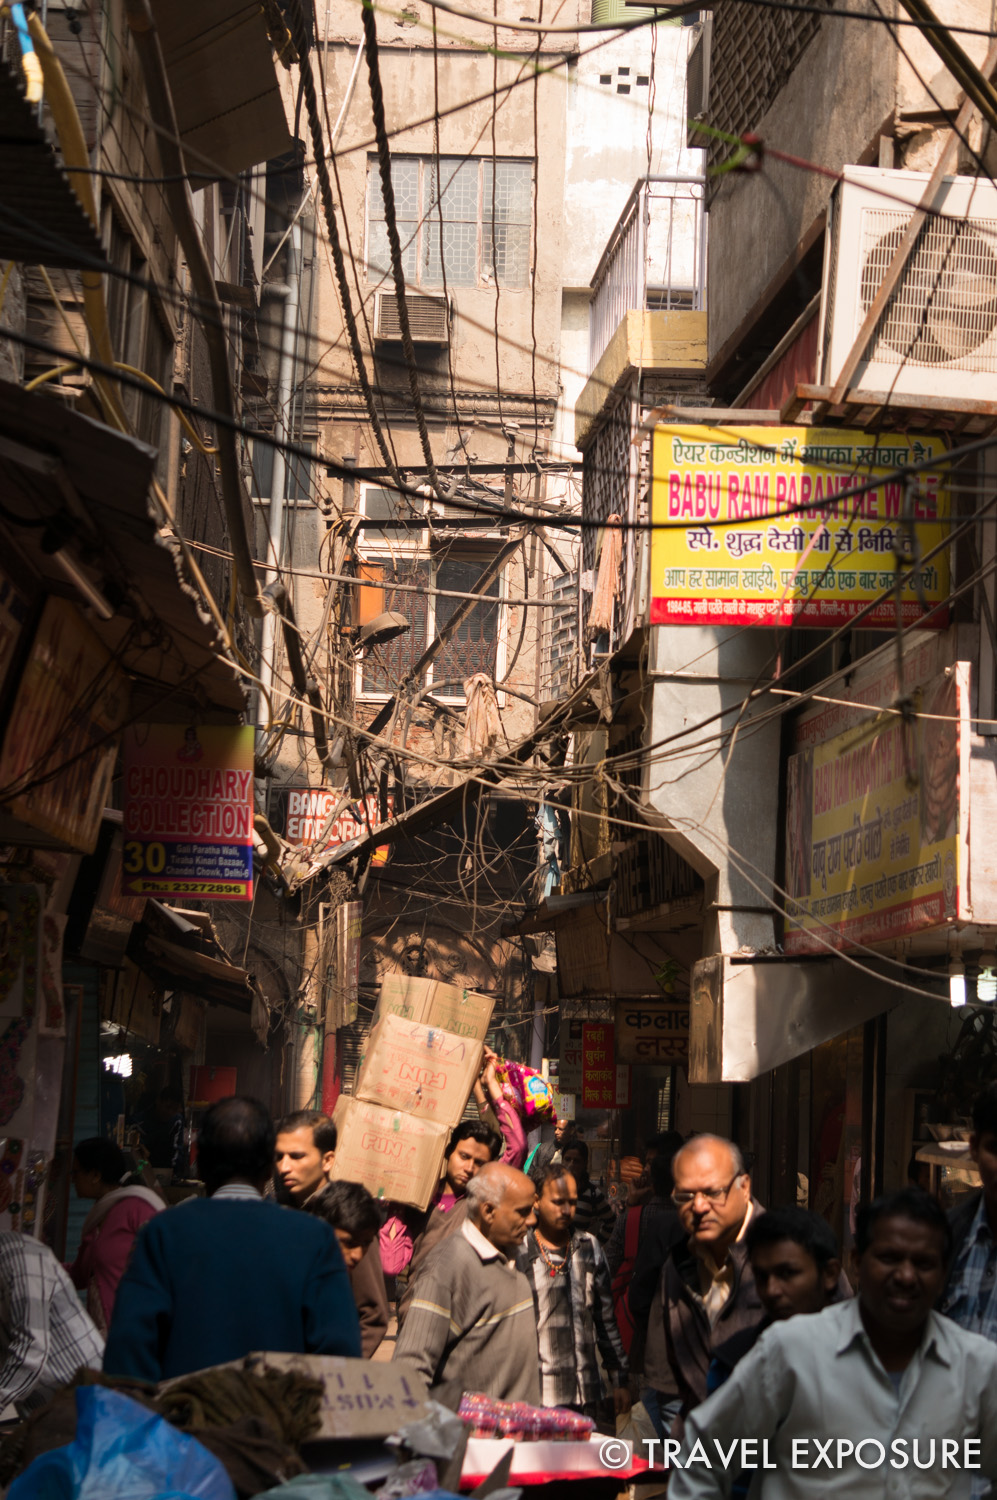 Root snapped a quick photo while walking through the smaller back alleys of old Delhi.